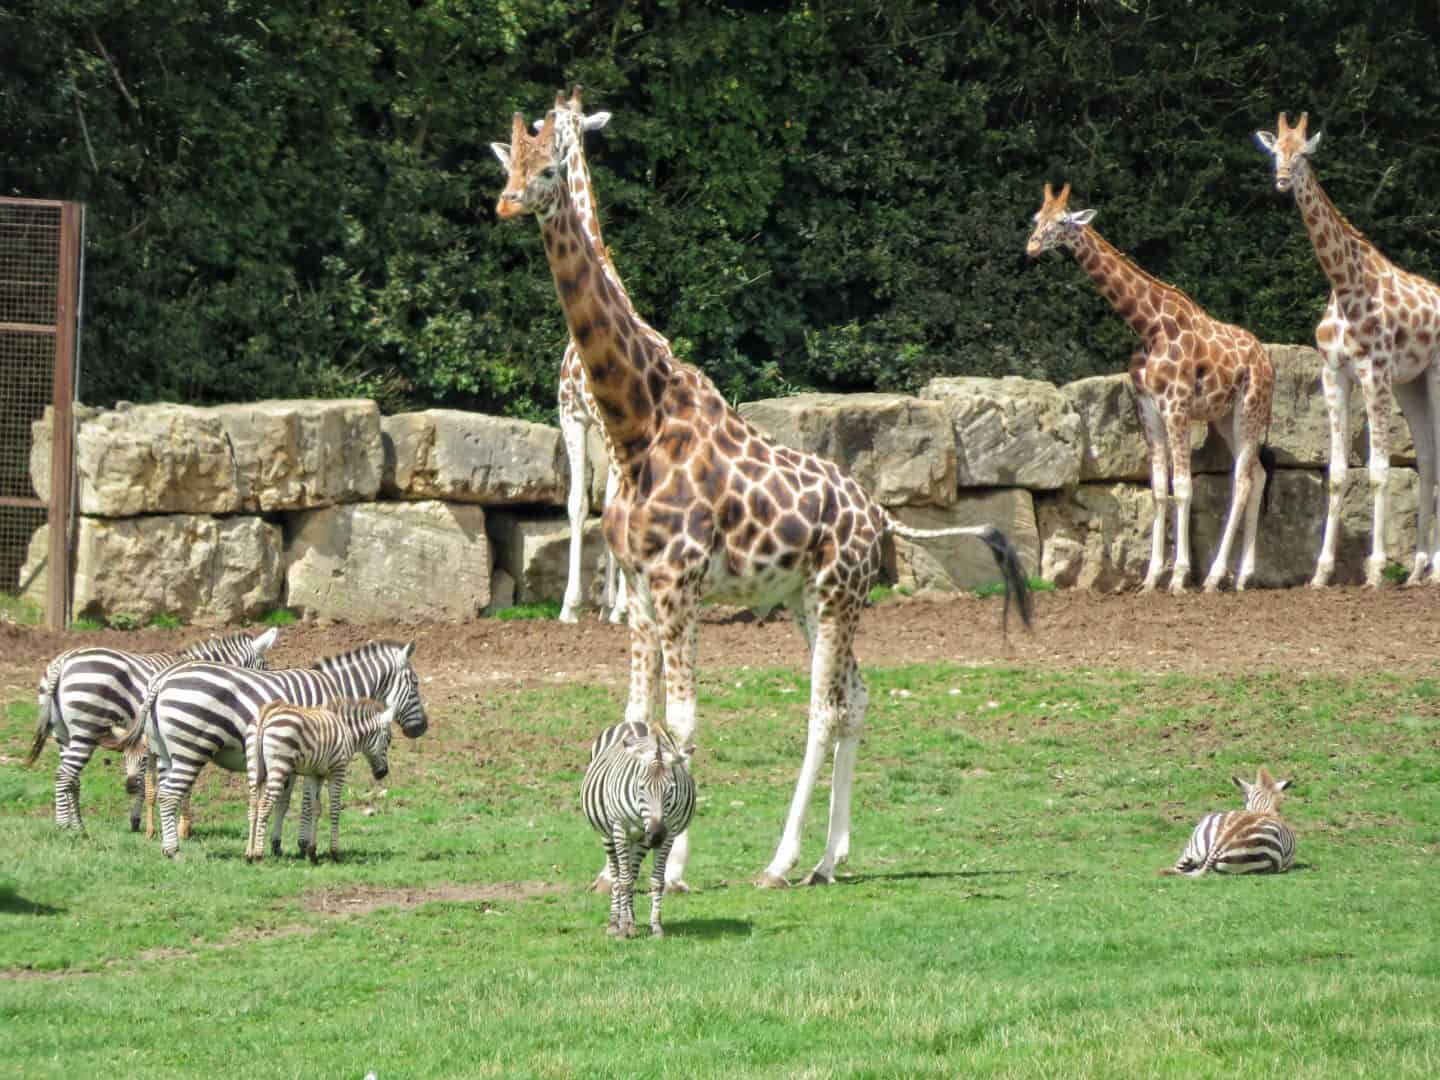 Giraffe and zebra at Longleat Safari Park